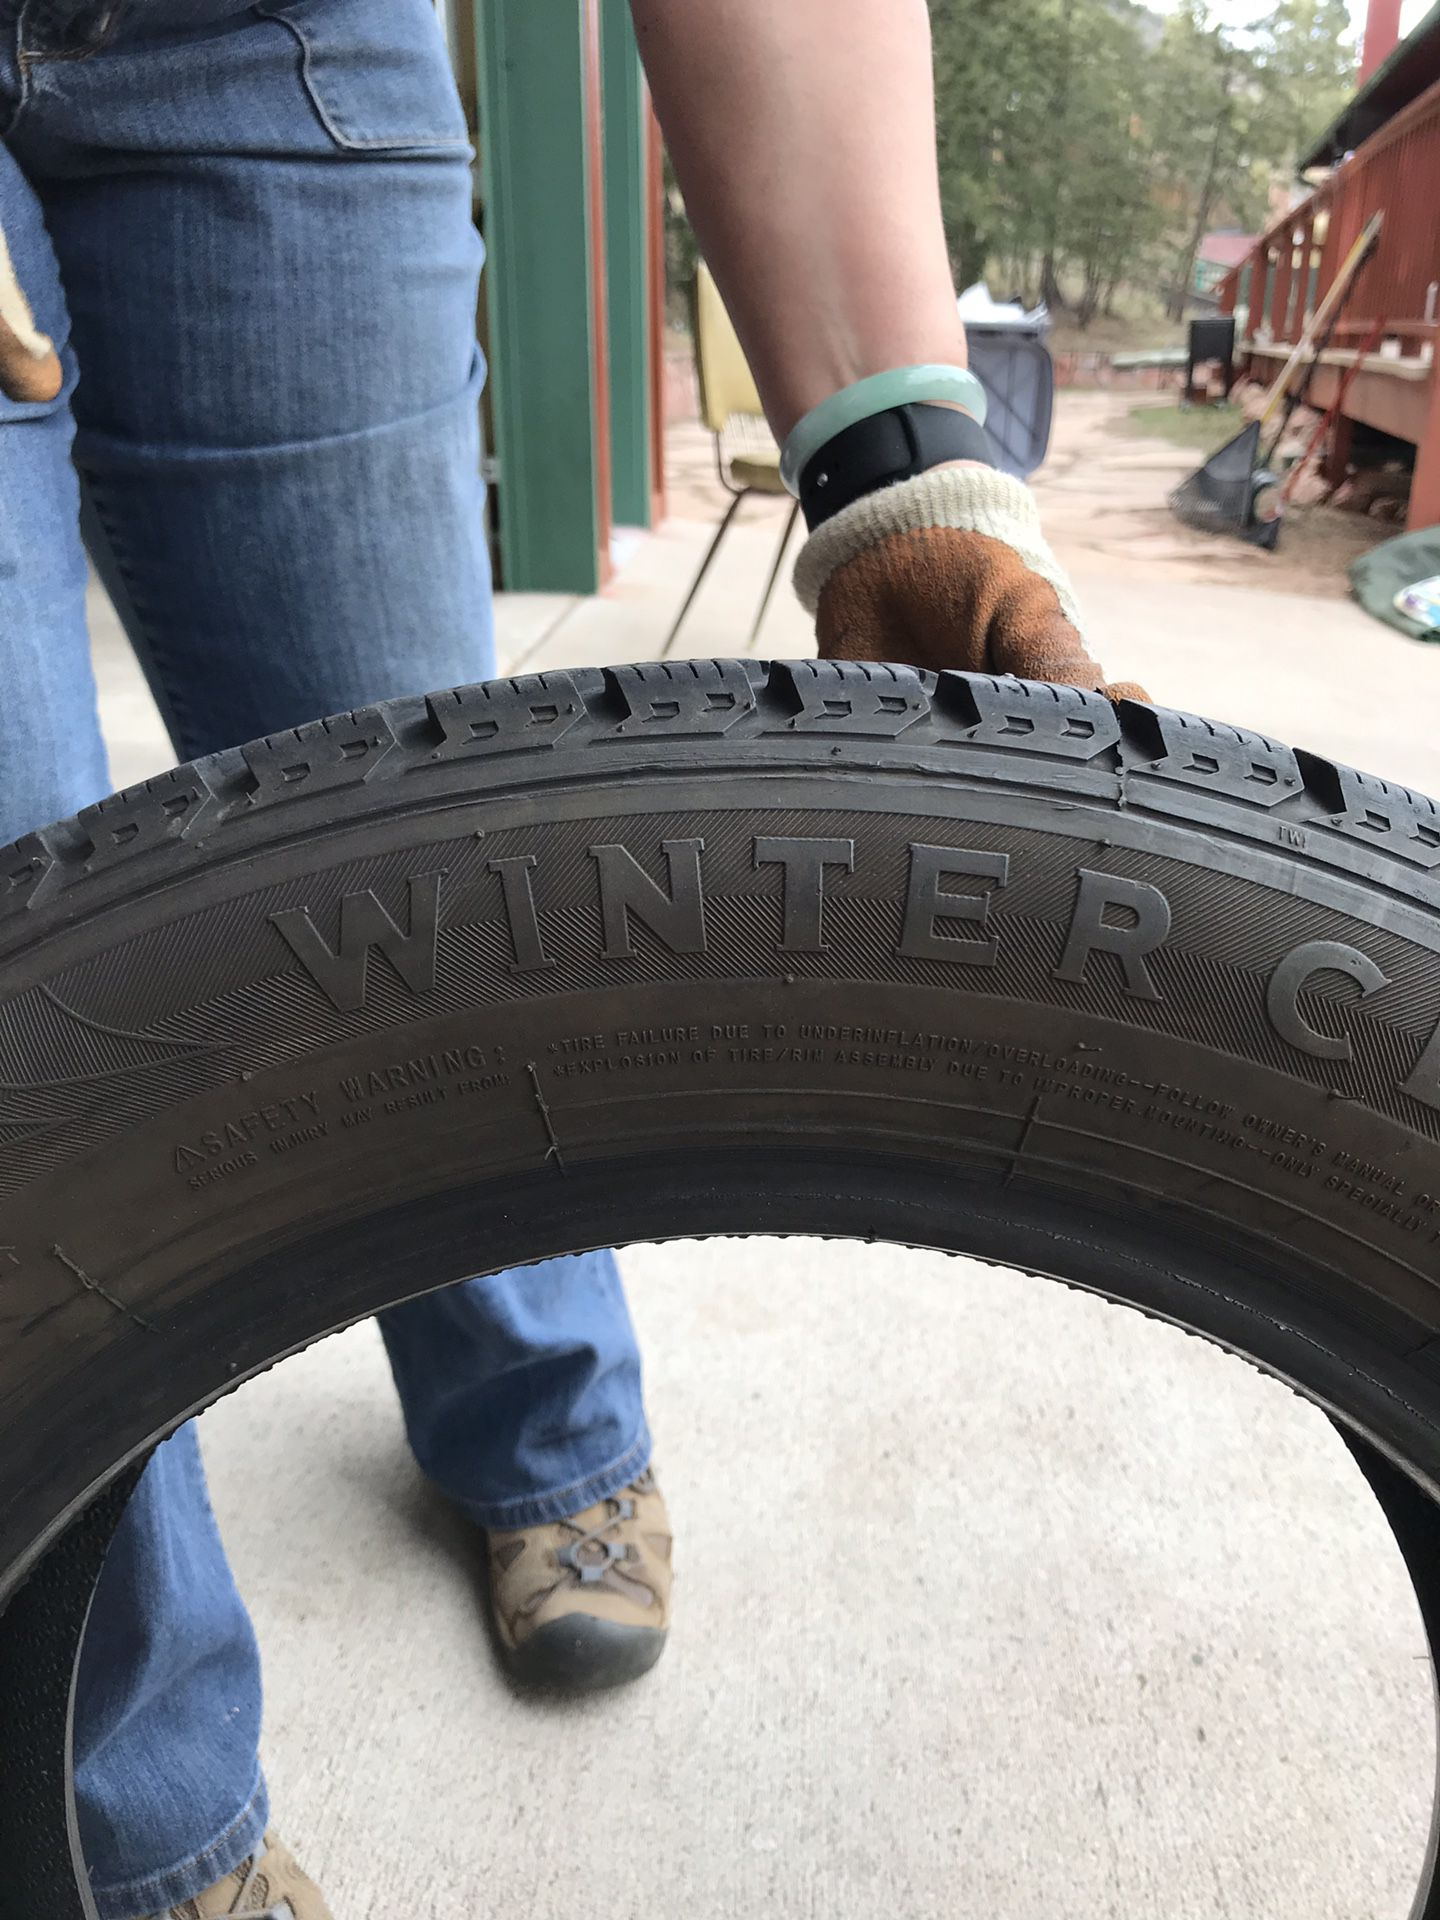 4 Studded tires